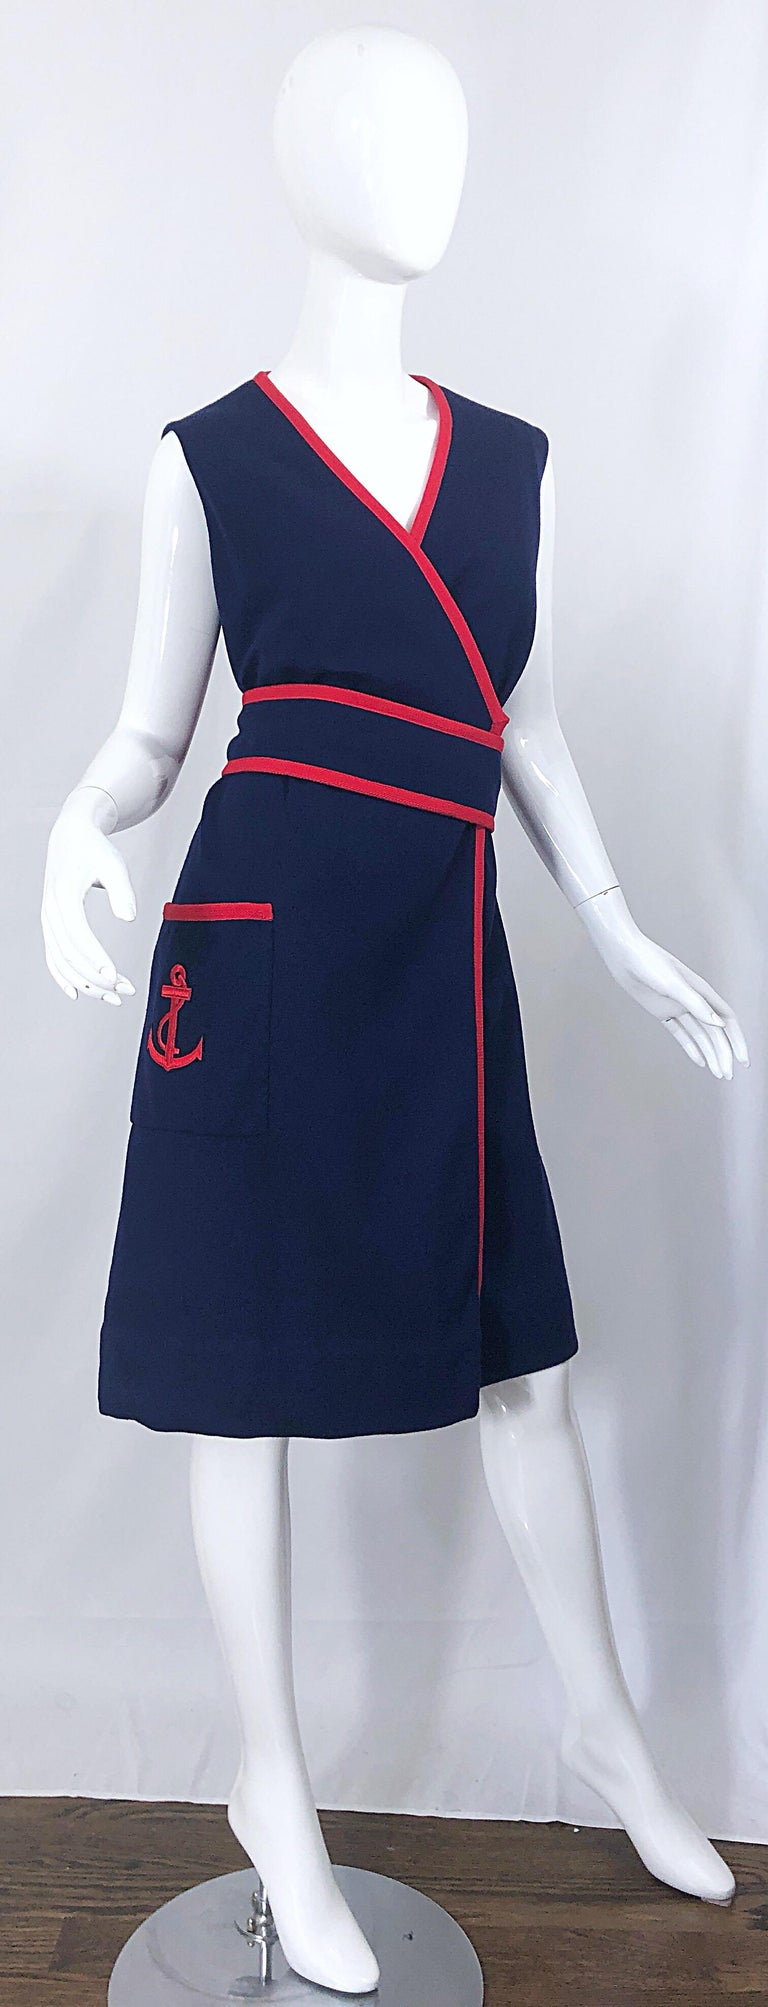 Chic 1960s TEAL TRAINA larger size navy blue and red nautical 'anchor' belted wool wrap dress!   Features a soft navy blue virgin wool with red accents. Red anchor embroidered at the left hip pocket. Interior side button closure, with hook-and-eye